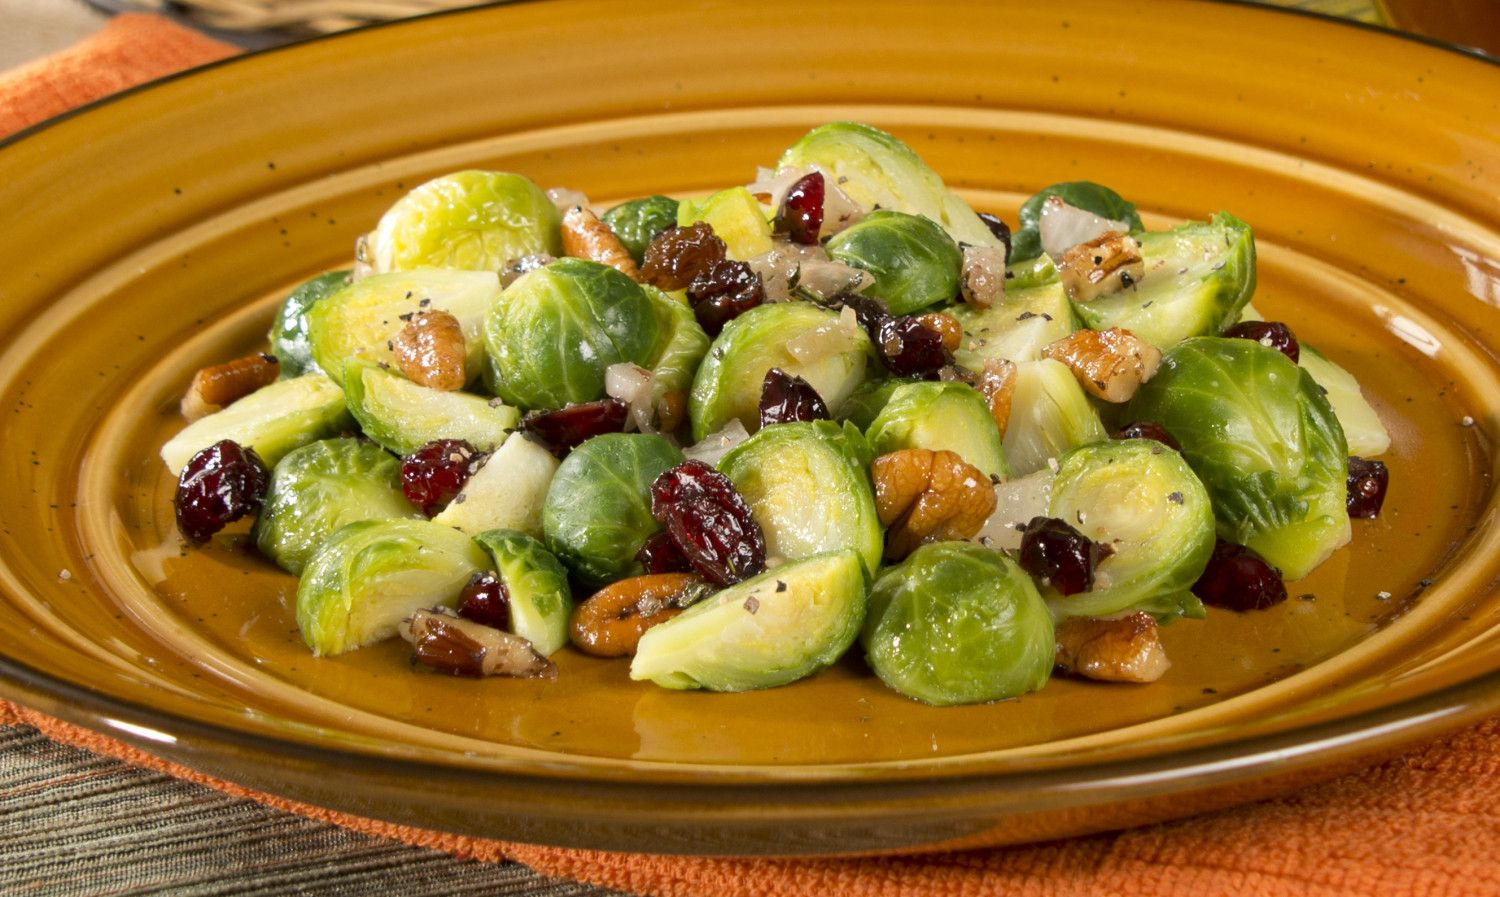 Holiday brussels sprouts recipes pictsweet farms